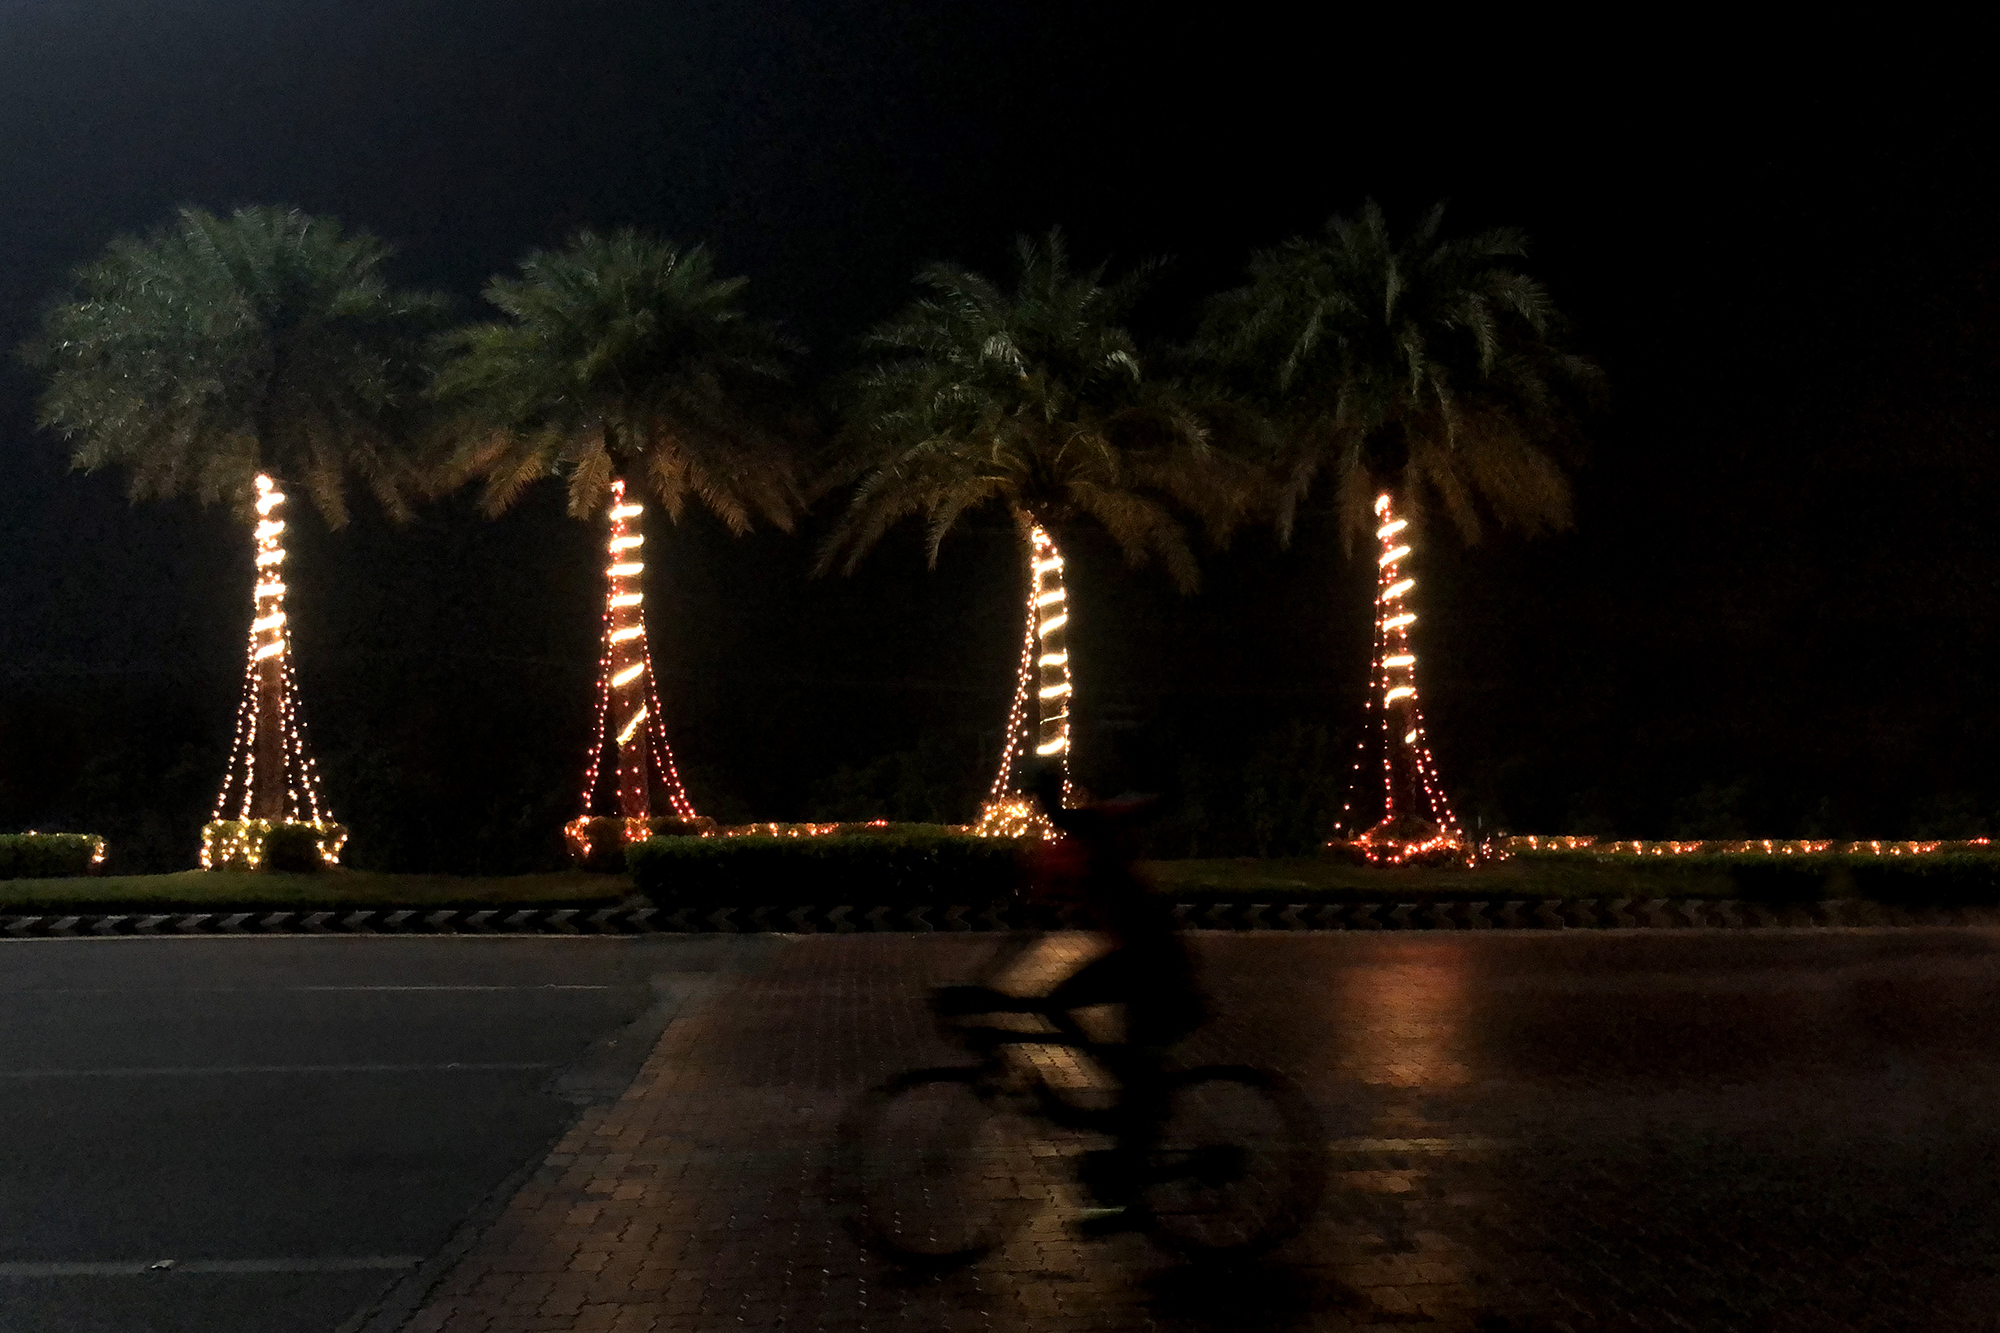 Winters in Chennai are barely felt. But you can see winter in the decorations around the city as Christmas and New Year come by. One such winter night when the city was decked up in twinkling lights, I saw this cyclist swiftly ride by a row of decorated trees near a toll gate. It looked like the lights were celebrating his crossing the finish line at a cycling competition!